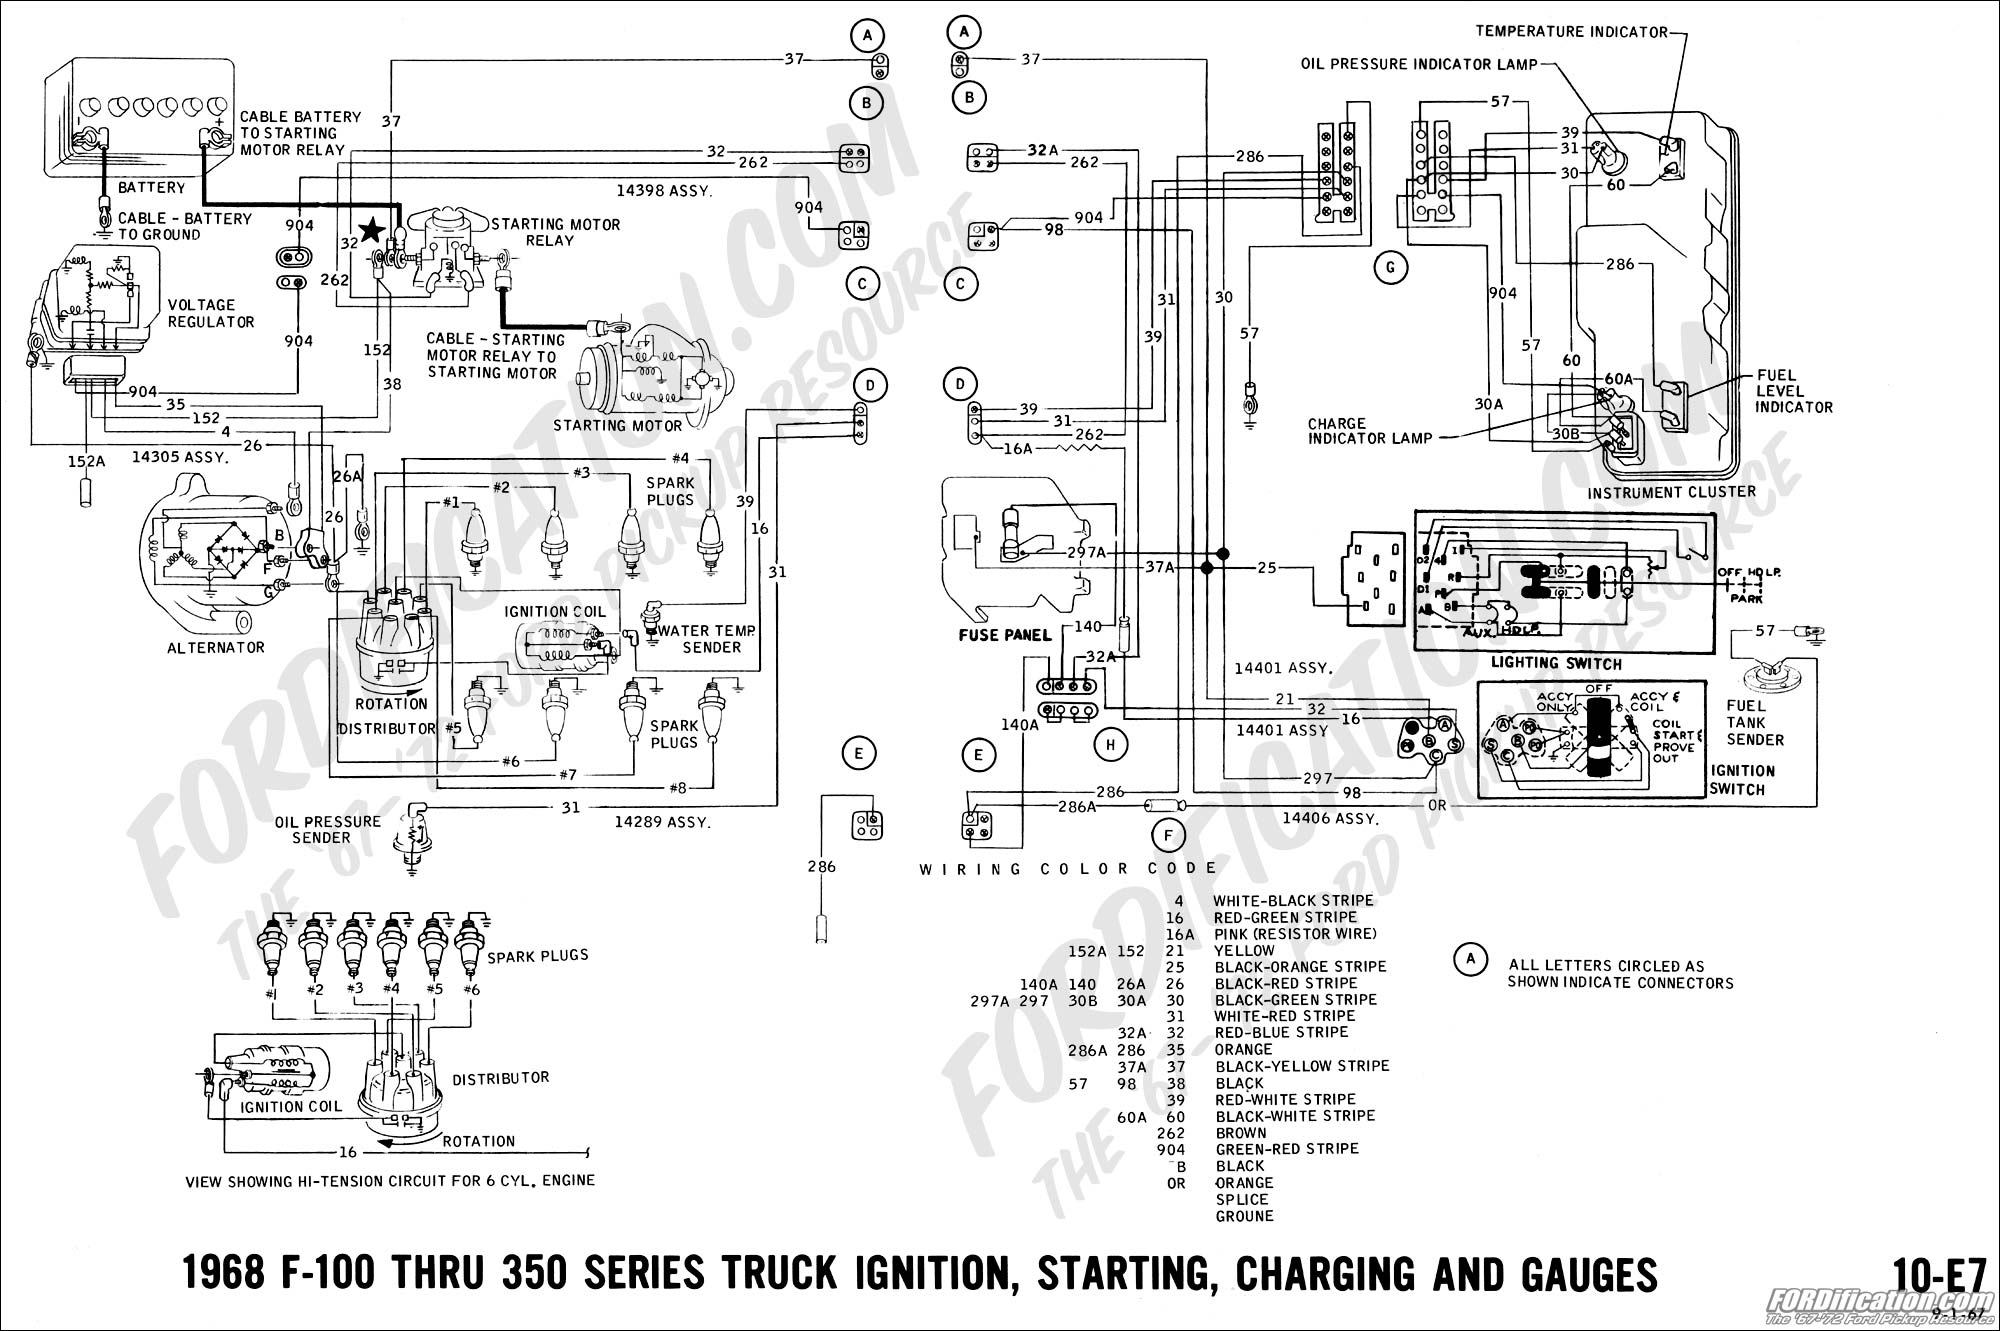 68 Caprice Wire Diagram Wiring Library 1981 Chevy Ford Truck Technical Drawings And Schematics Section H Rh Fordification Com